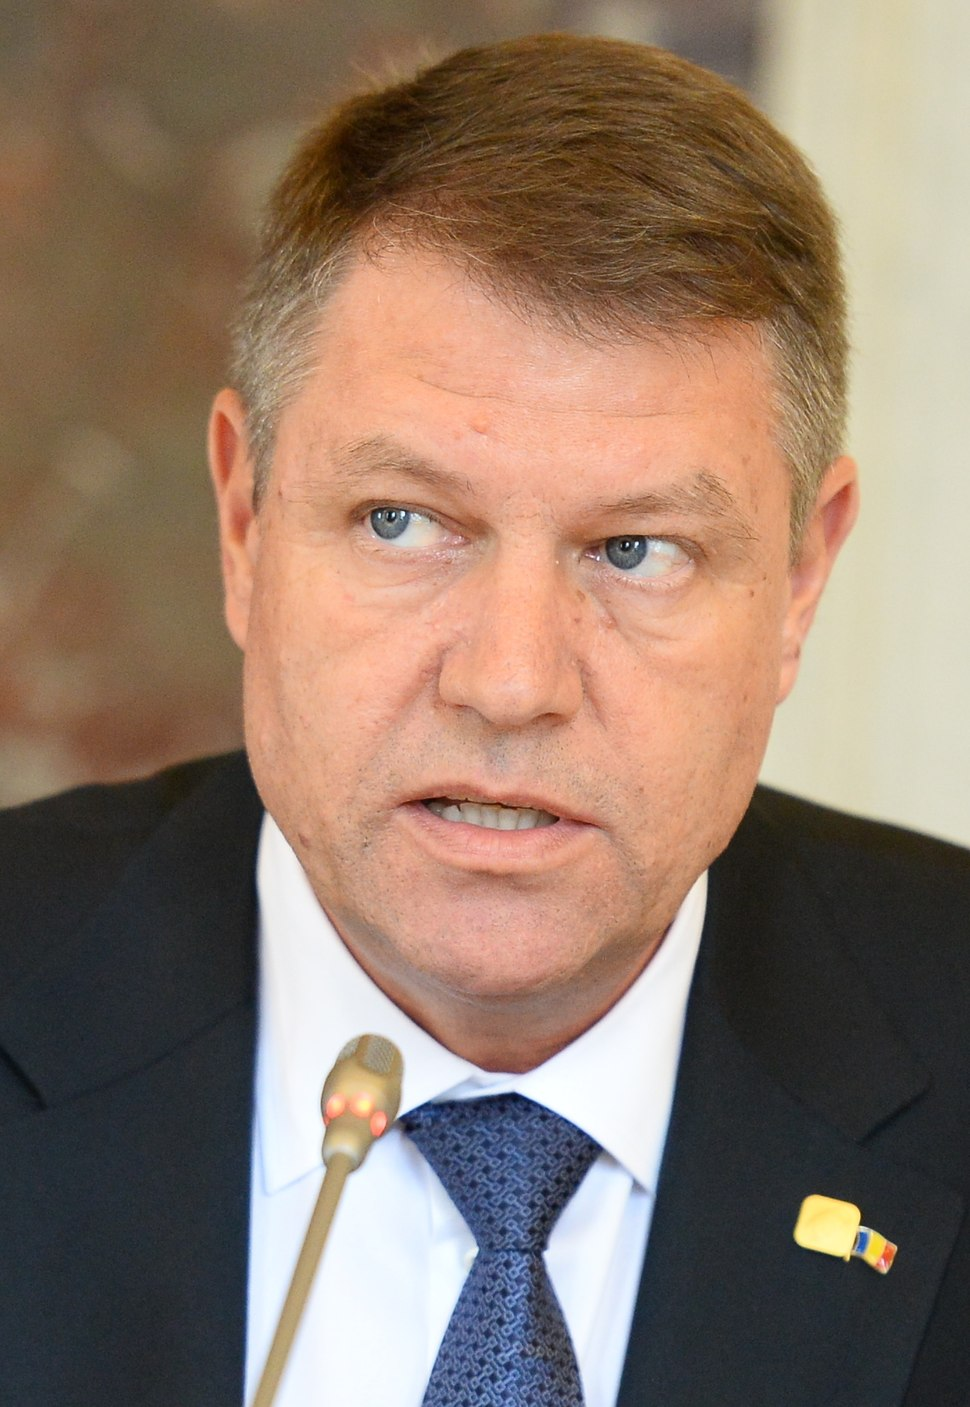 Klaus Iohannis at EPP Summit, March 2015, Brussels (cropped)